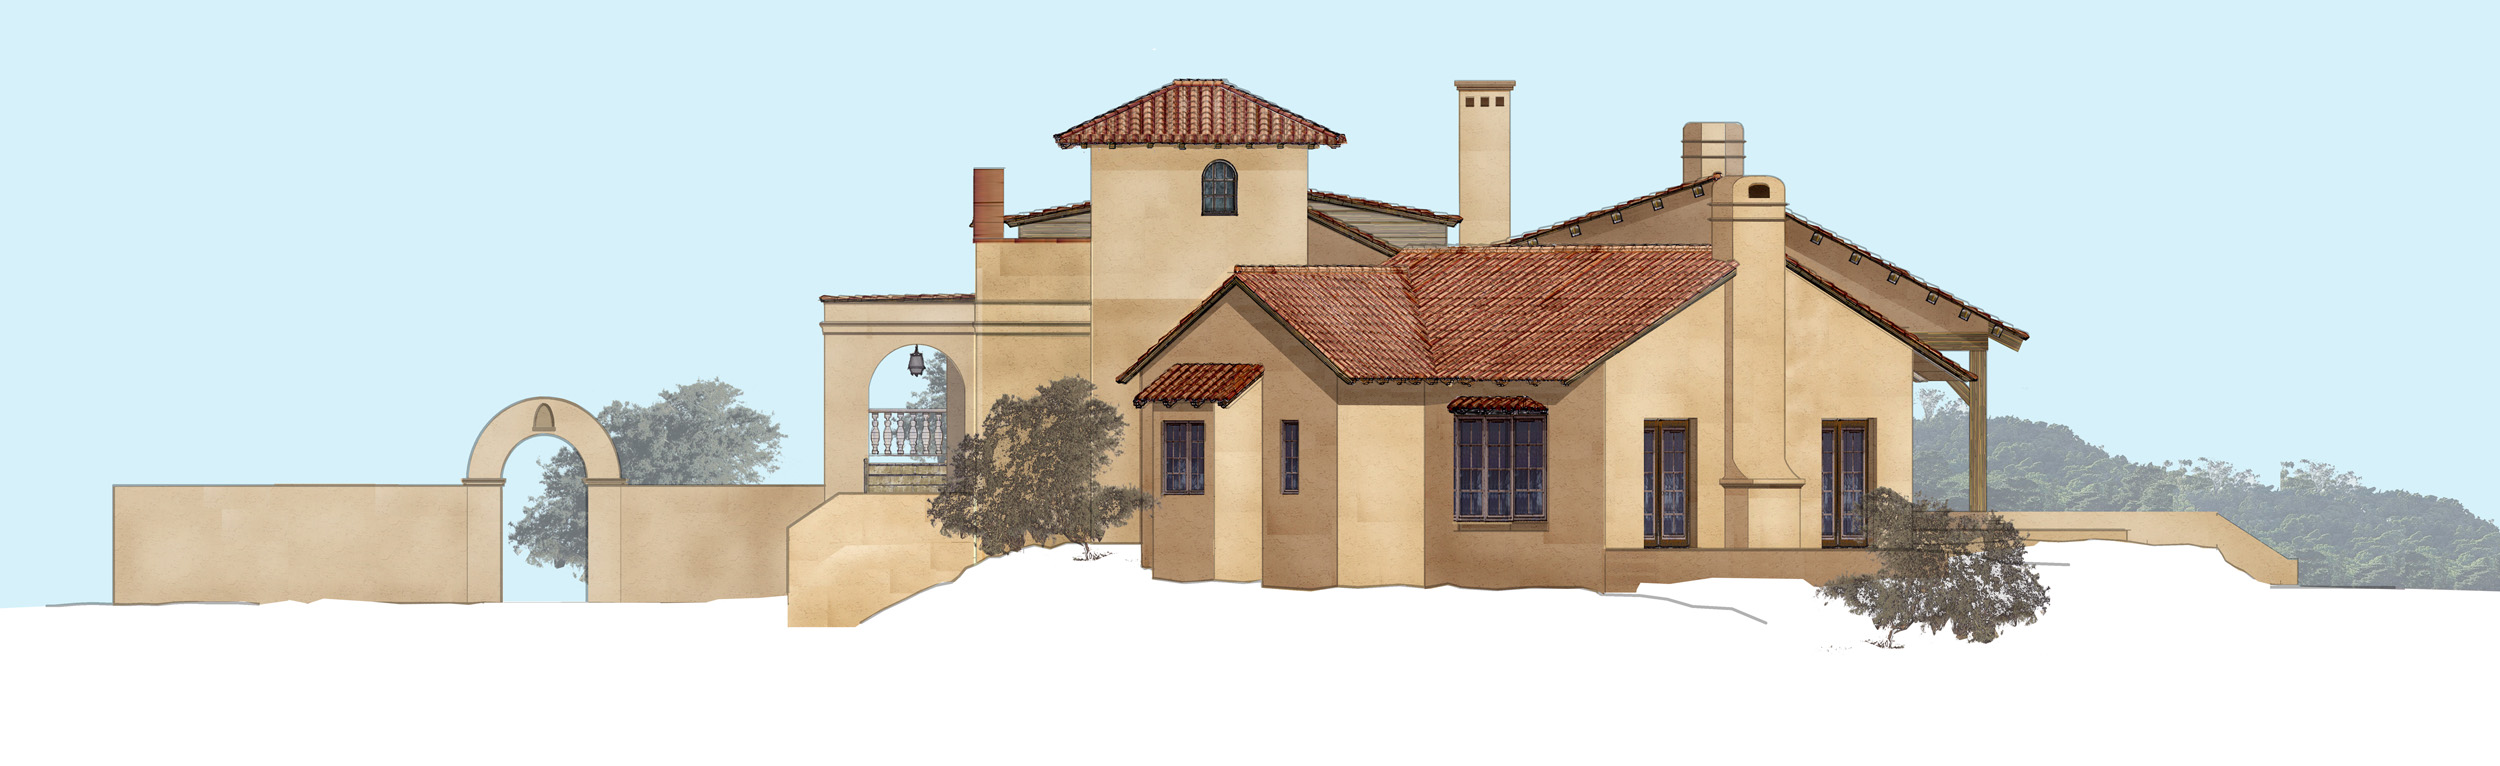 Portfolio - Briggs West Elevation.jpg